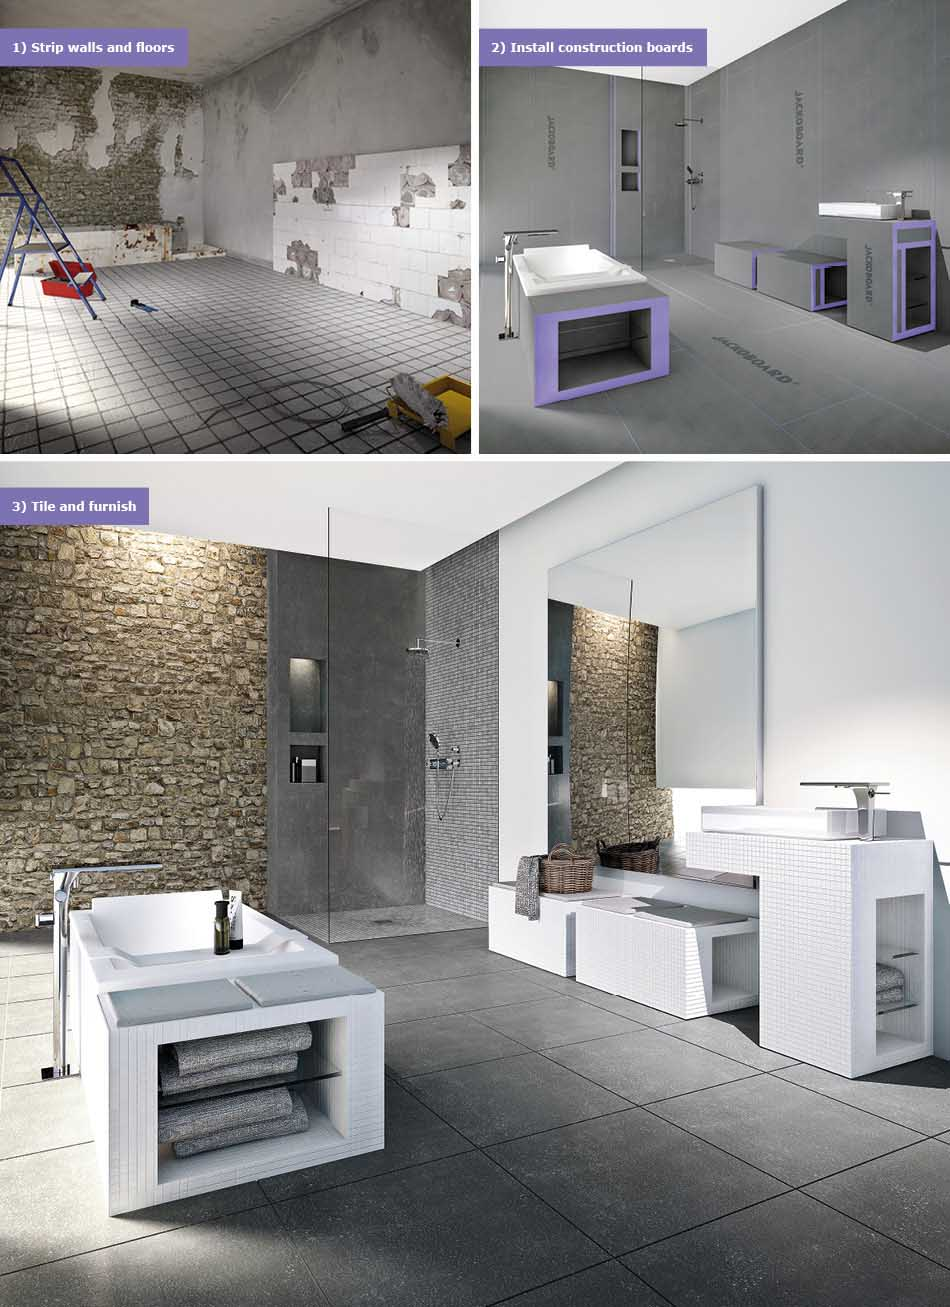 Collage picture of wet room before and after using Jackoboard